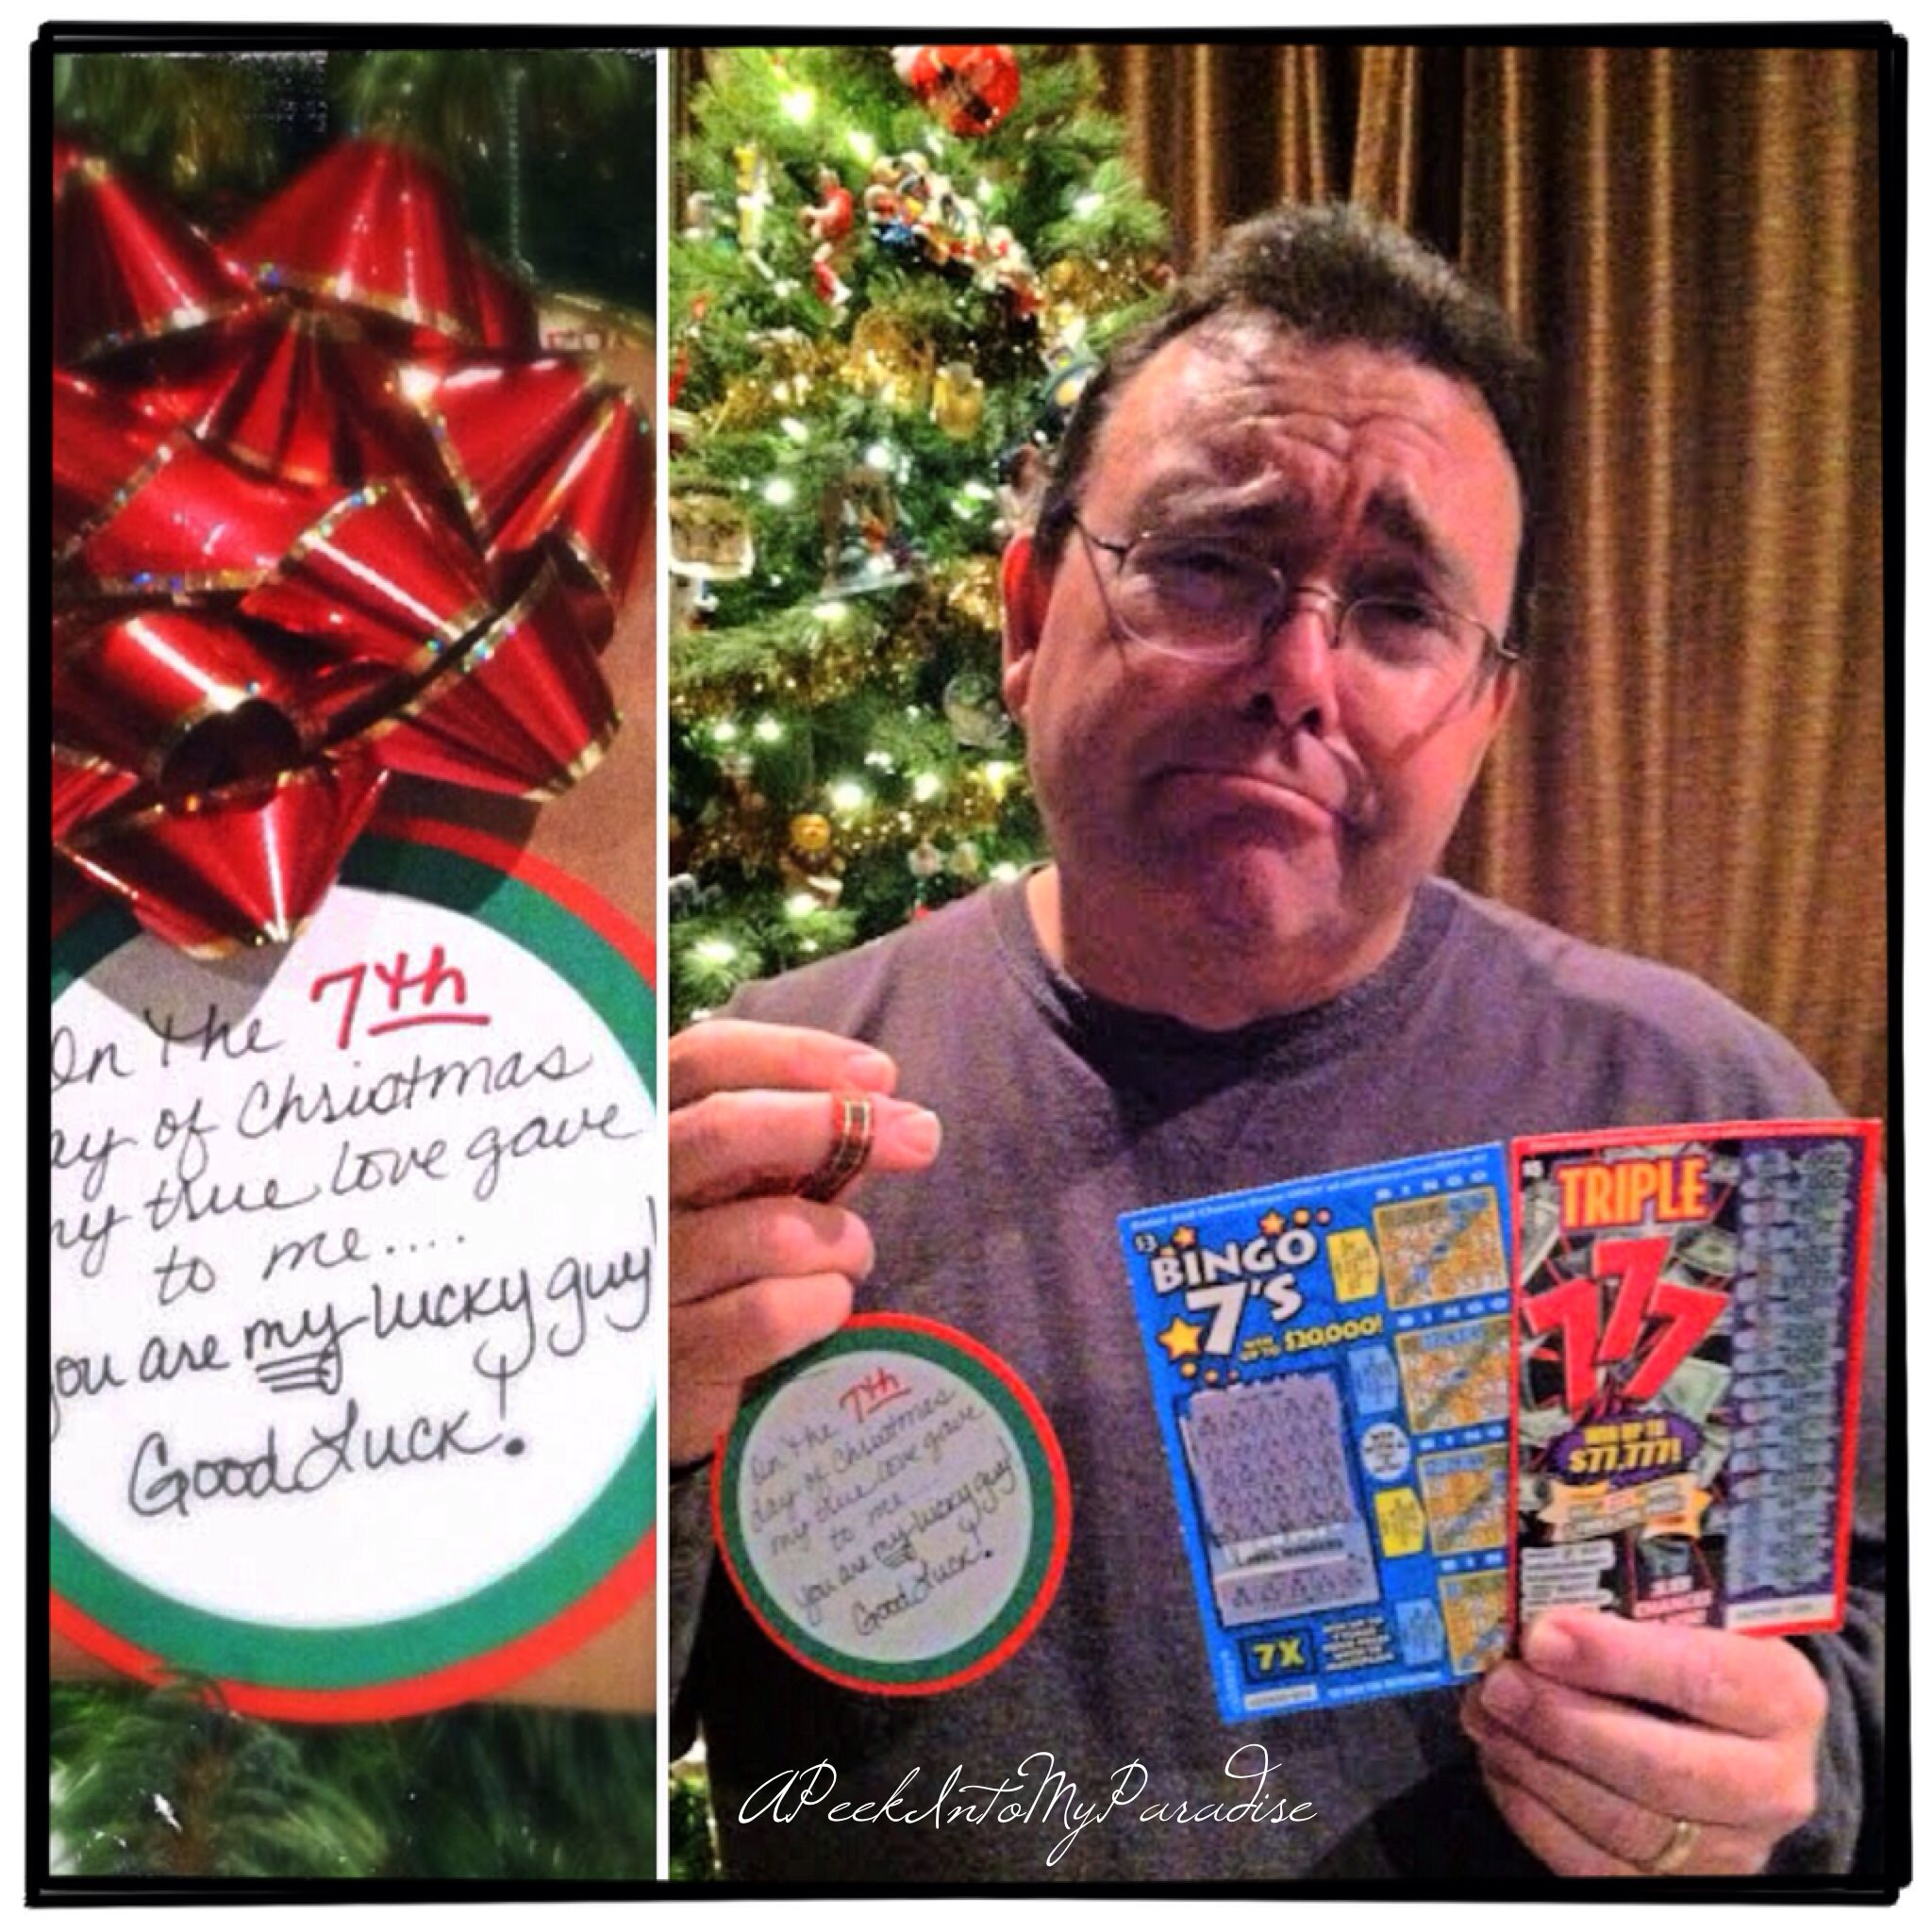 Gift Ideas For The 12 Days Of Christmas: 12 Days Of Christmas For Your Husband (w/list Of Ideas At